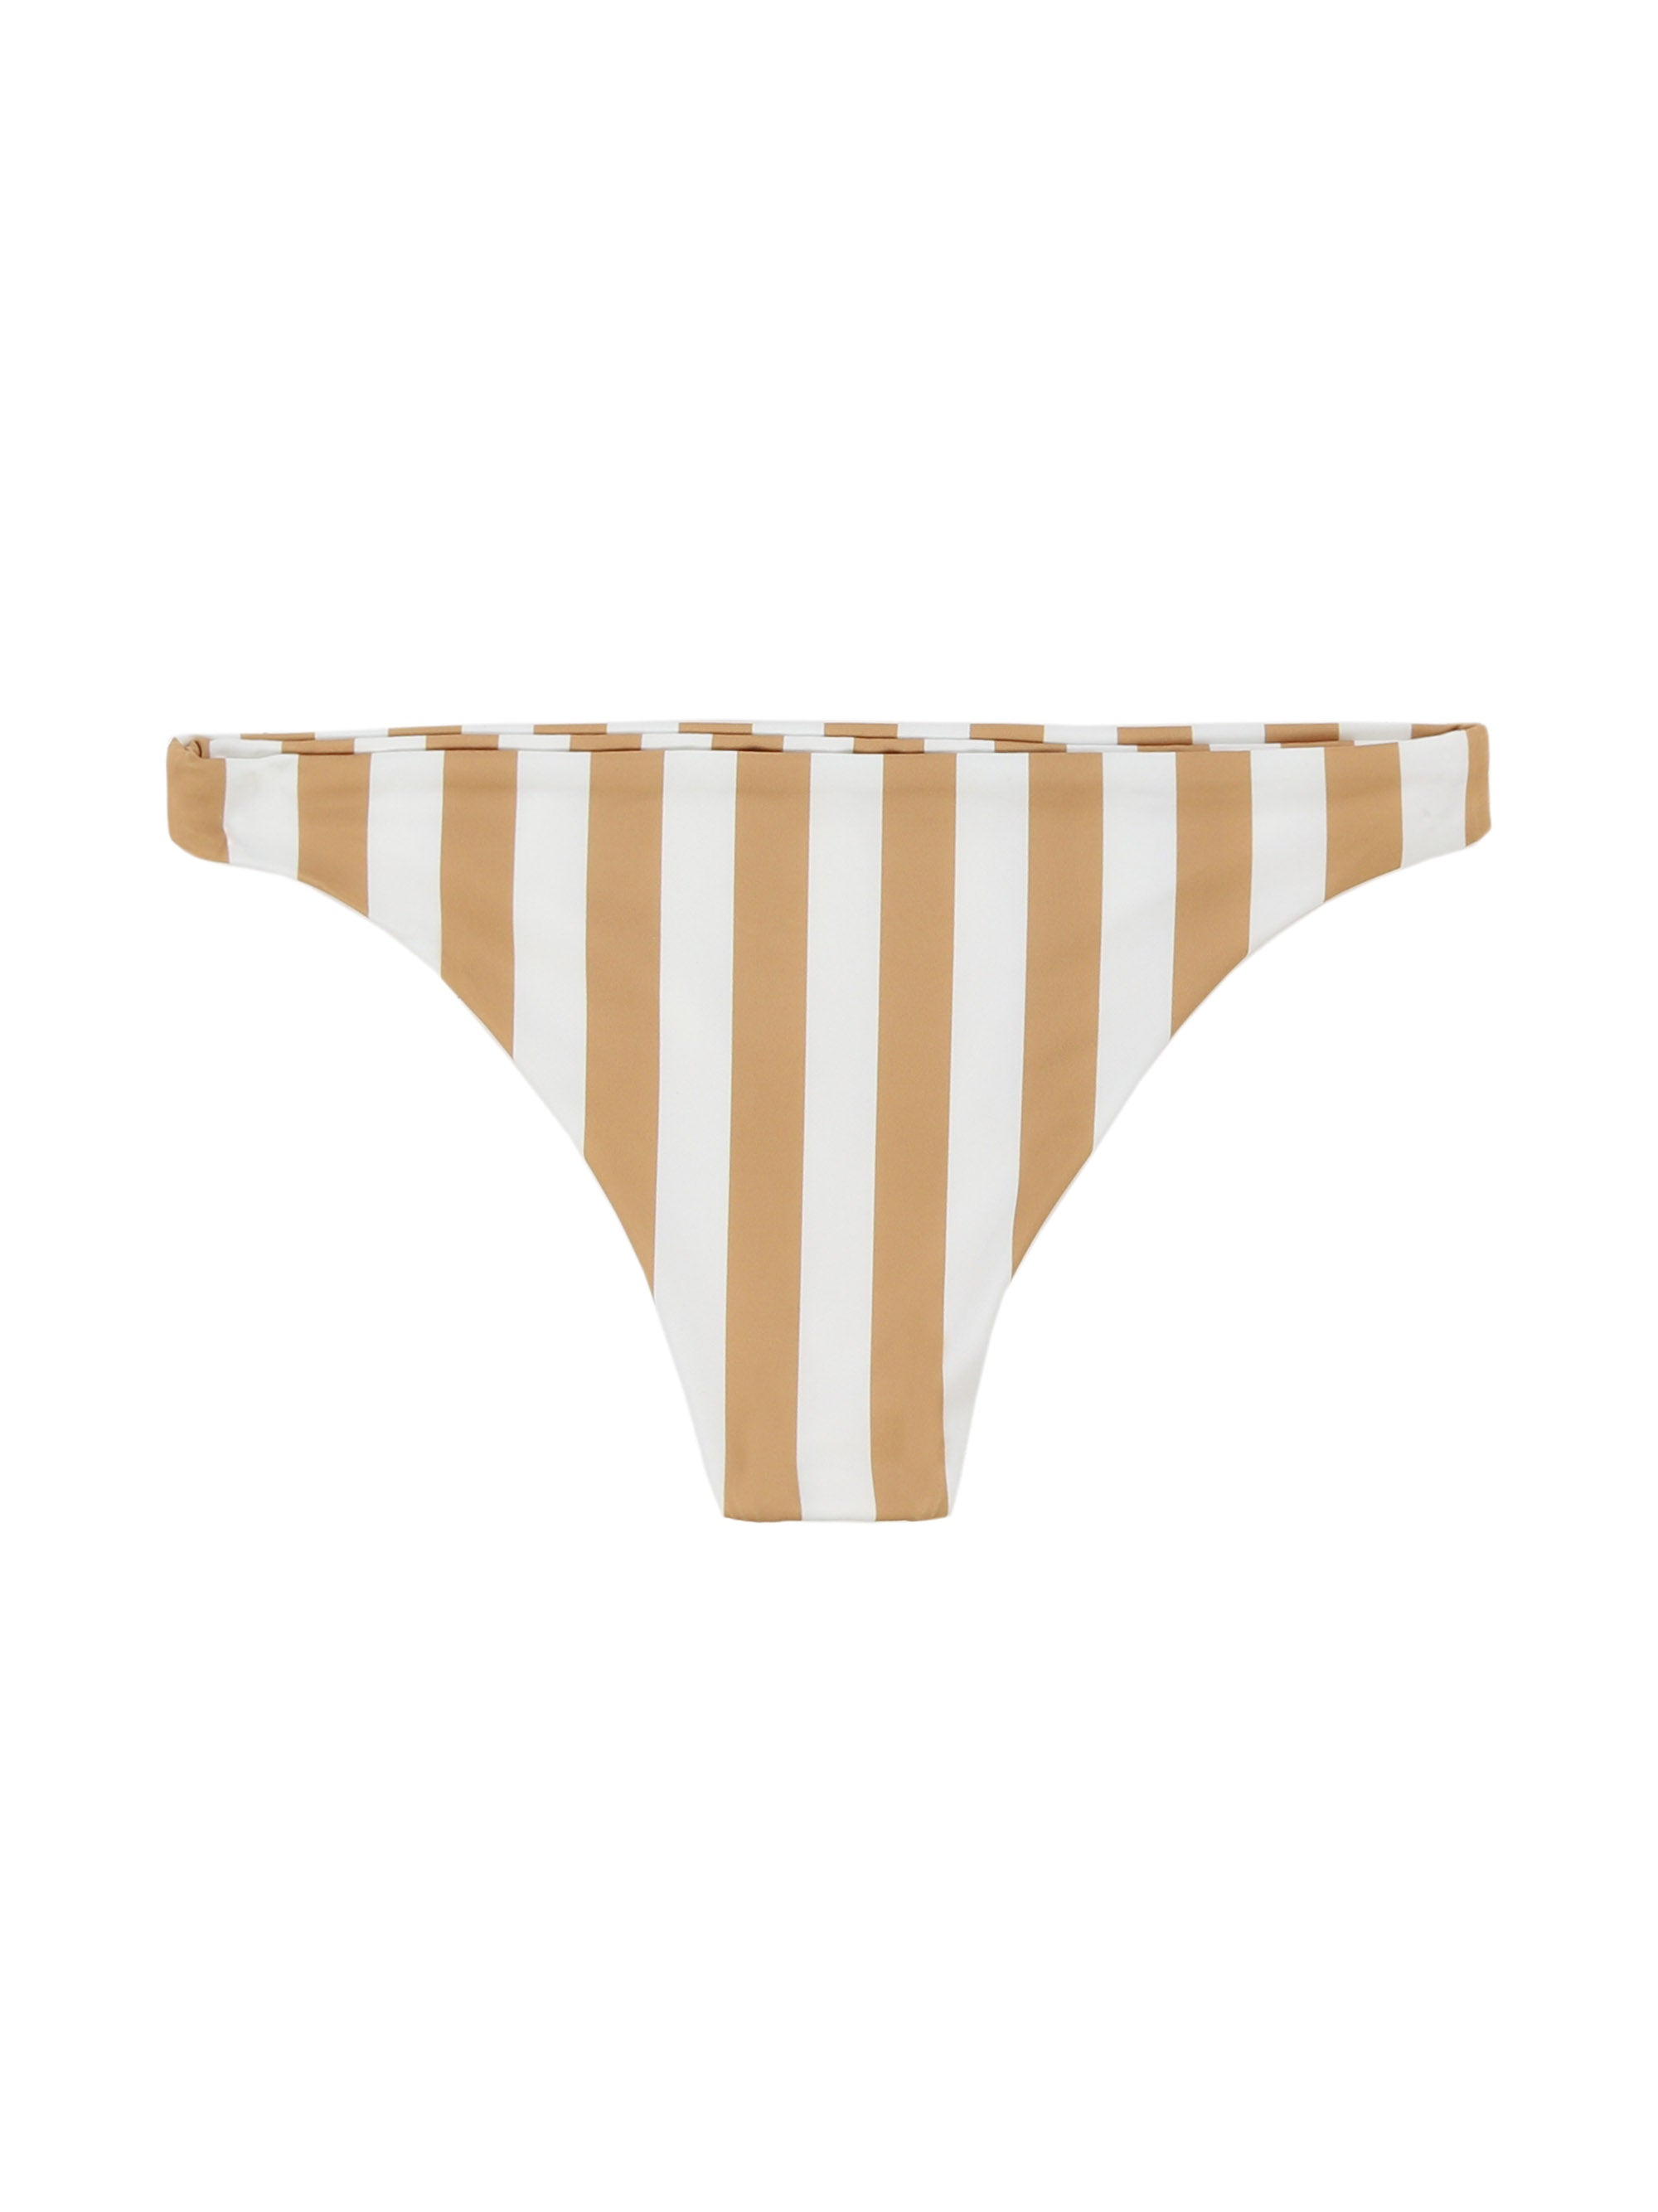 BRIEFBOTTOM(WHITE/NUDESTRIPE)